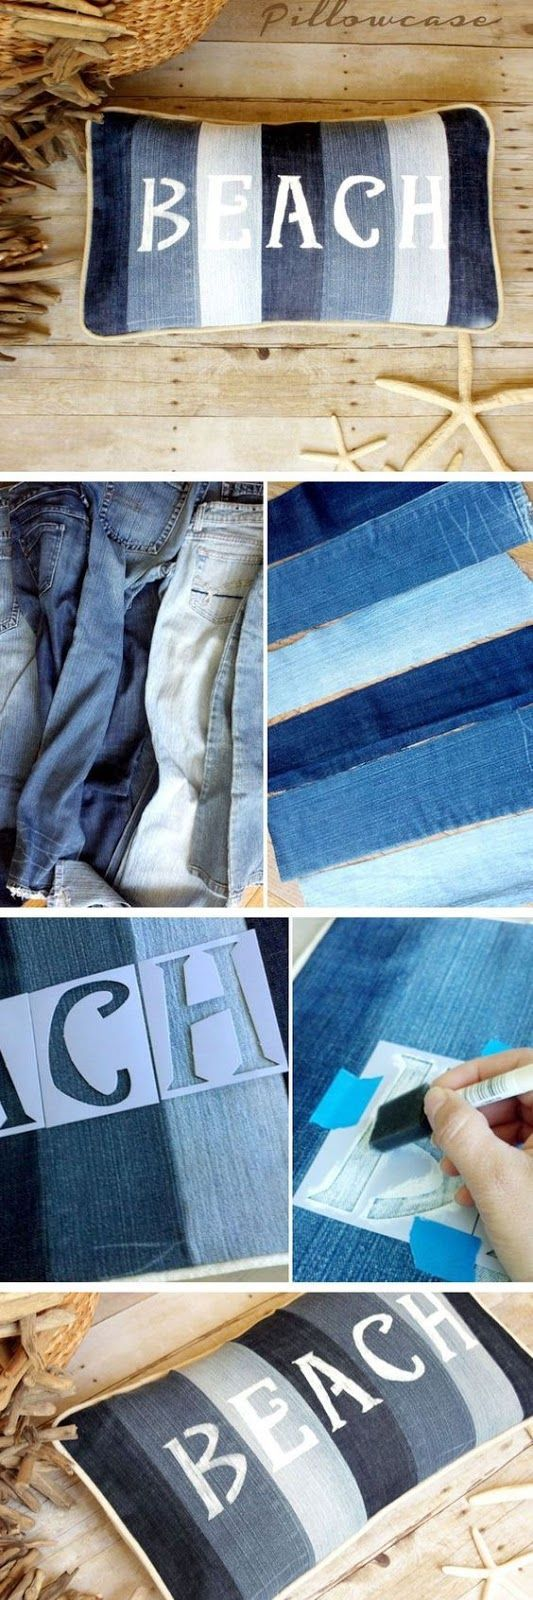 Beach pillow out of old jeans - denim crafts - DIY pillow - stencil decor